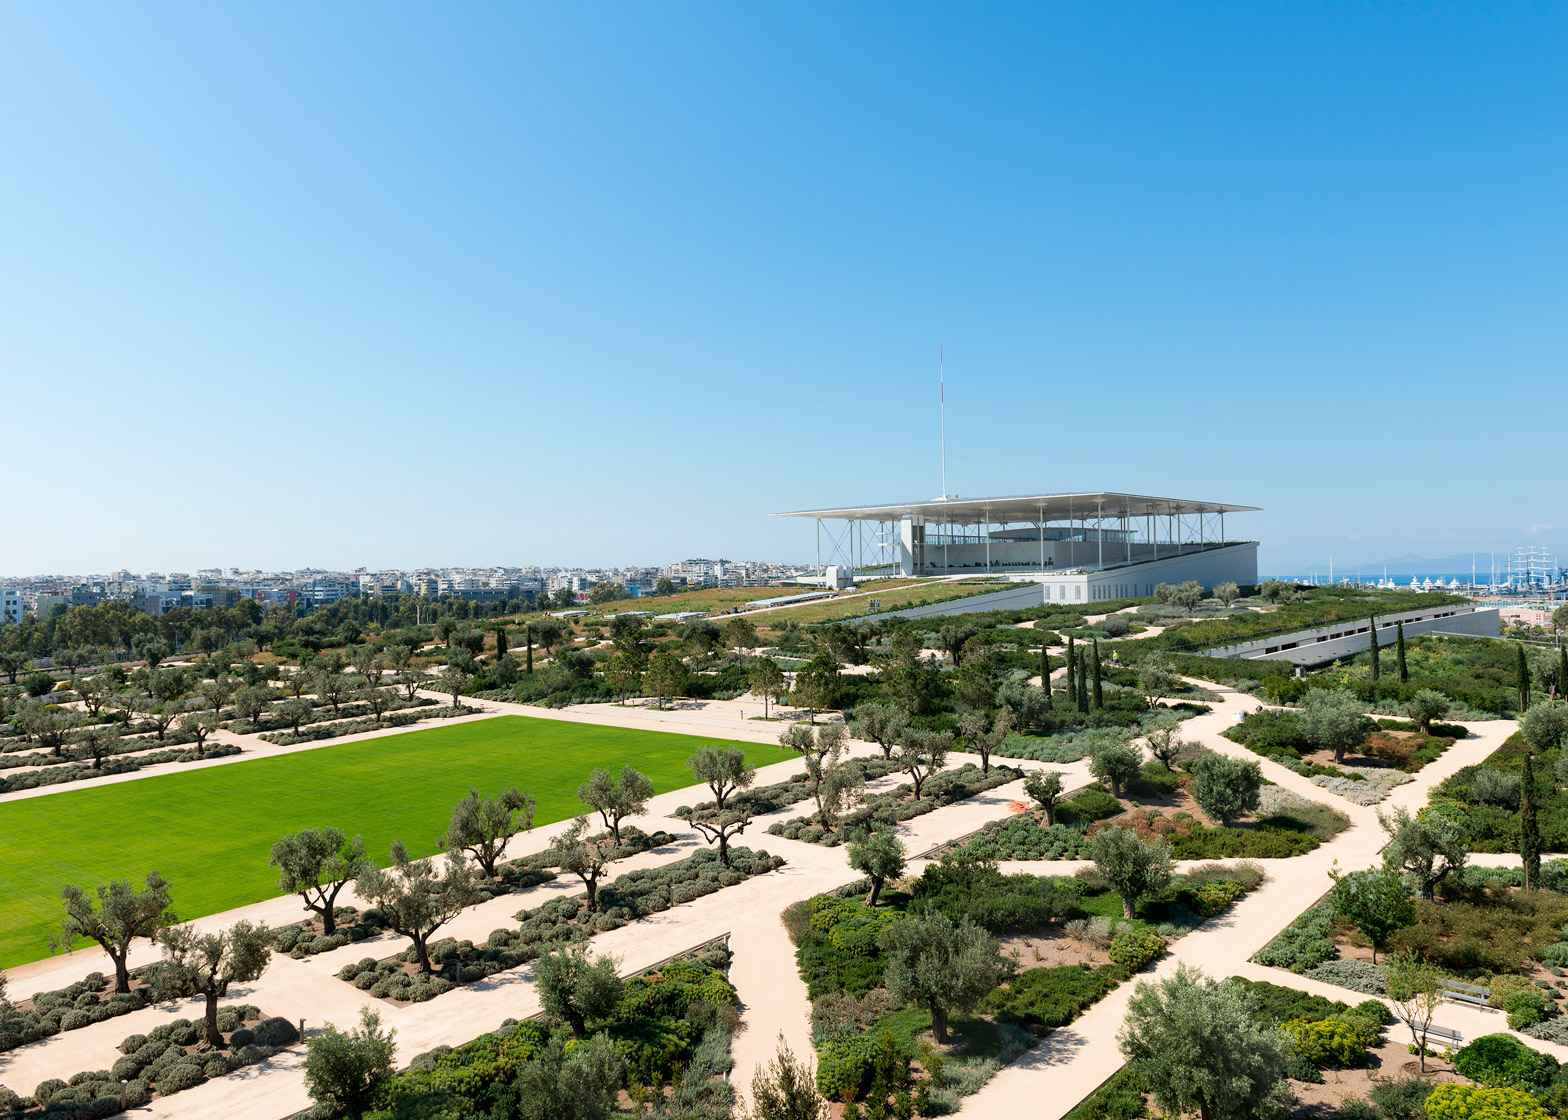 Private tour - Personal training at the gardens of SNFCC